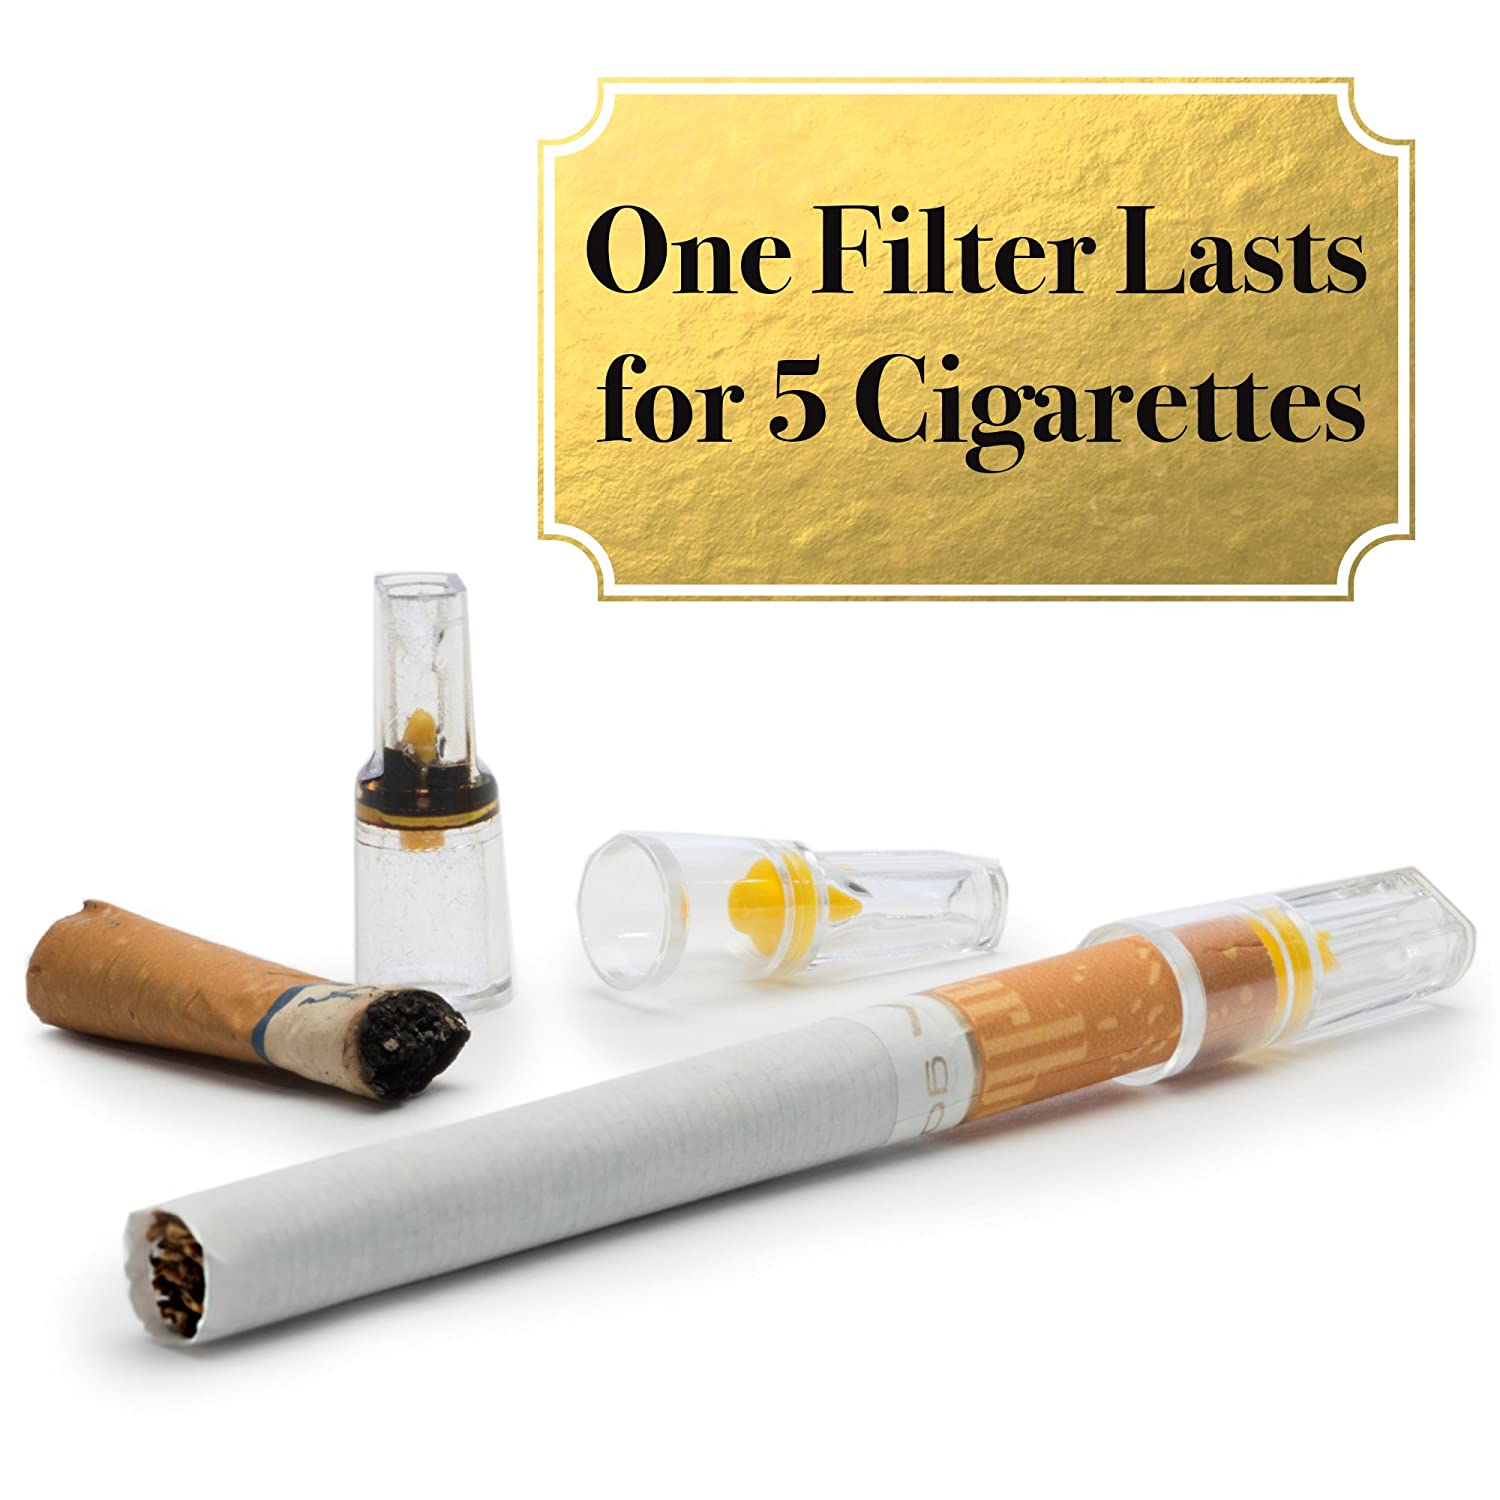 What do cigarette filters do